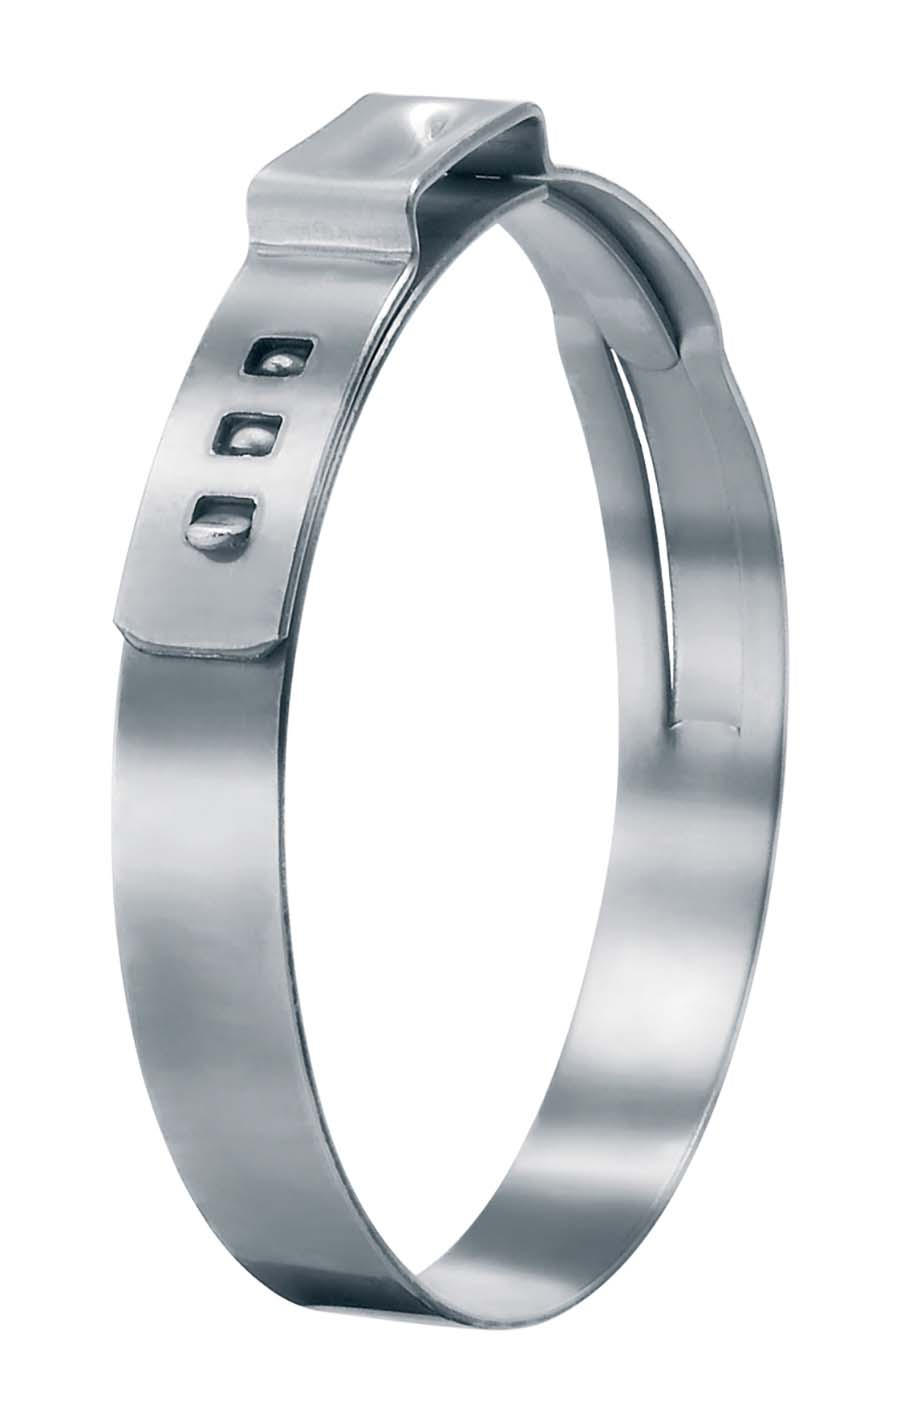 OETIKER - 7 MM BAND WIDTH, 0.6 MM THICKNESS SIZE RANGE: 13.2 - 15.7 mm, EAR WITH INSIDE: 8 mm - Part number OET16700016